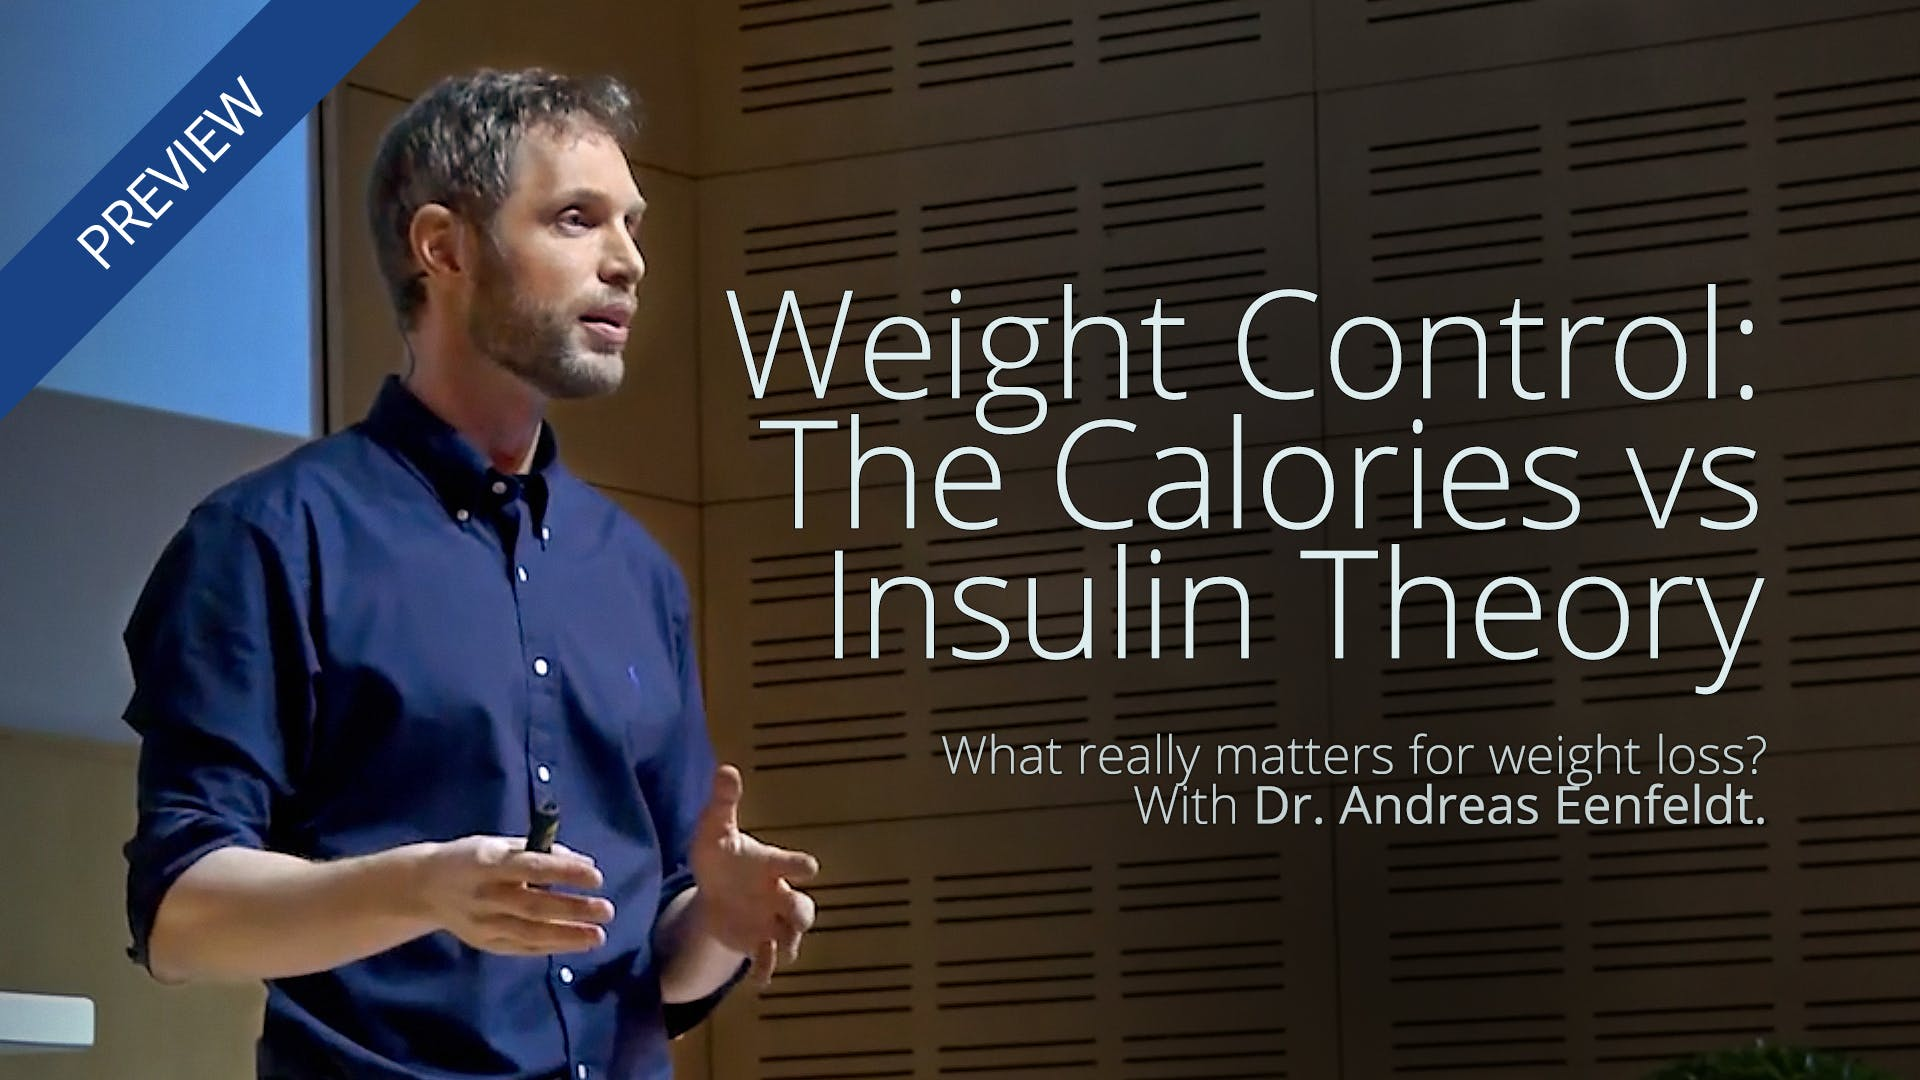 Is It Insulin or Excessive Calories That Make Us Gain Weight?